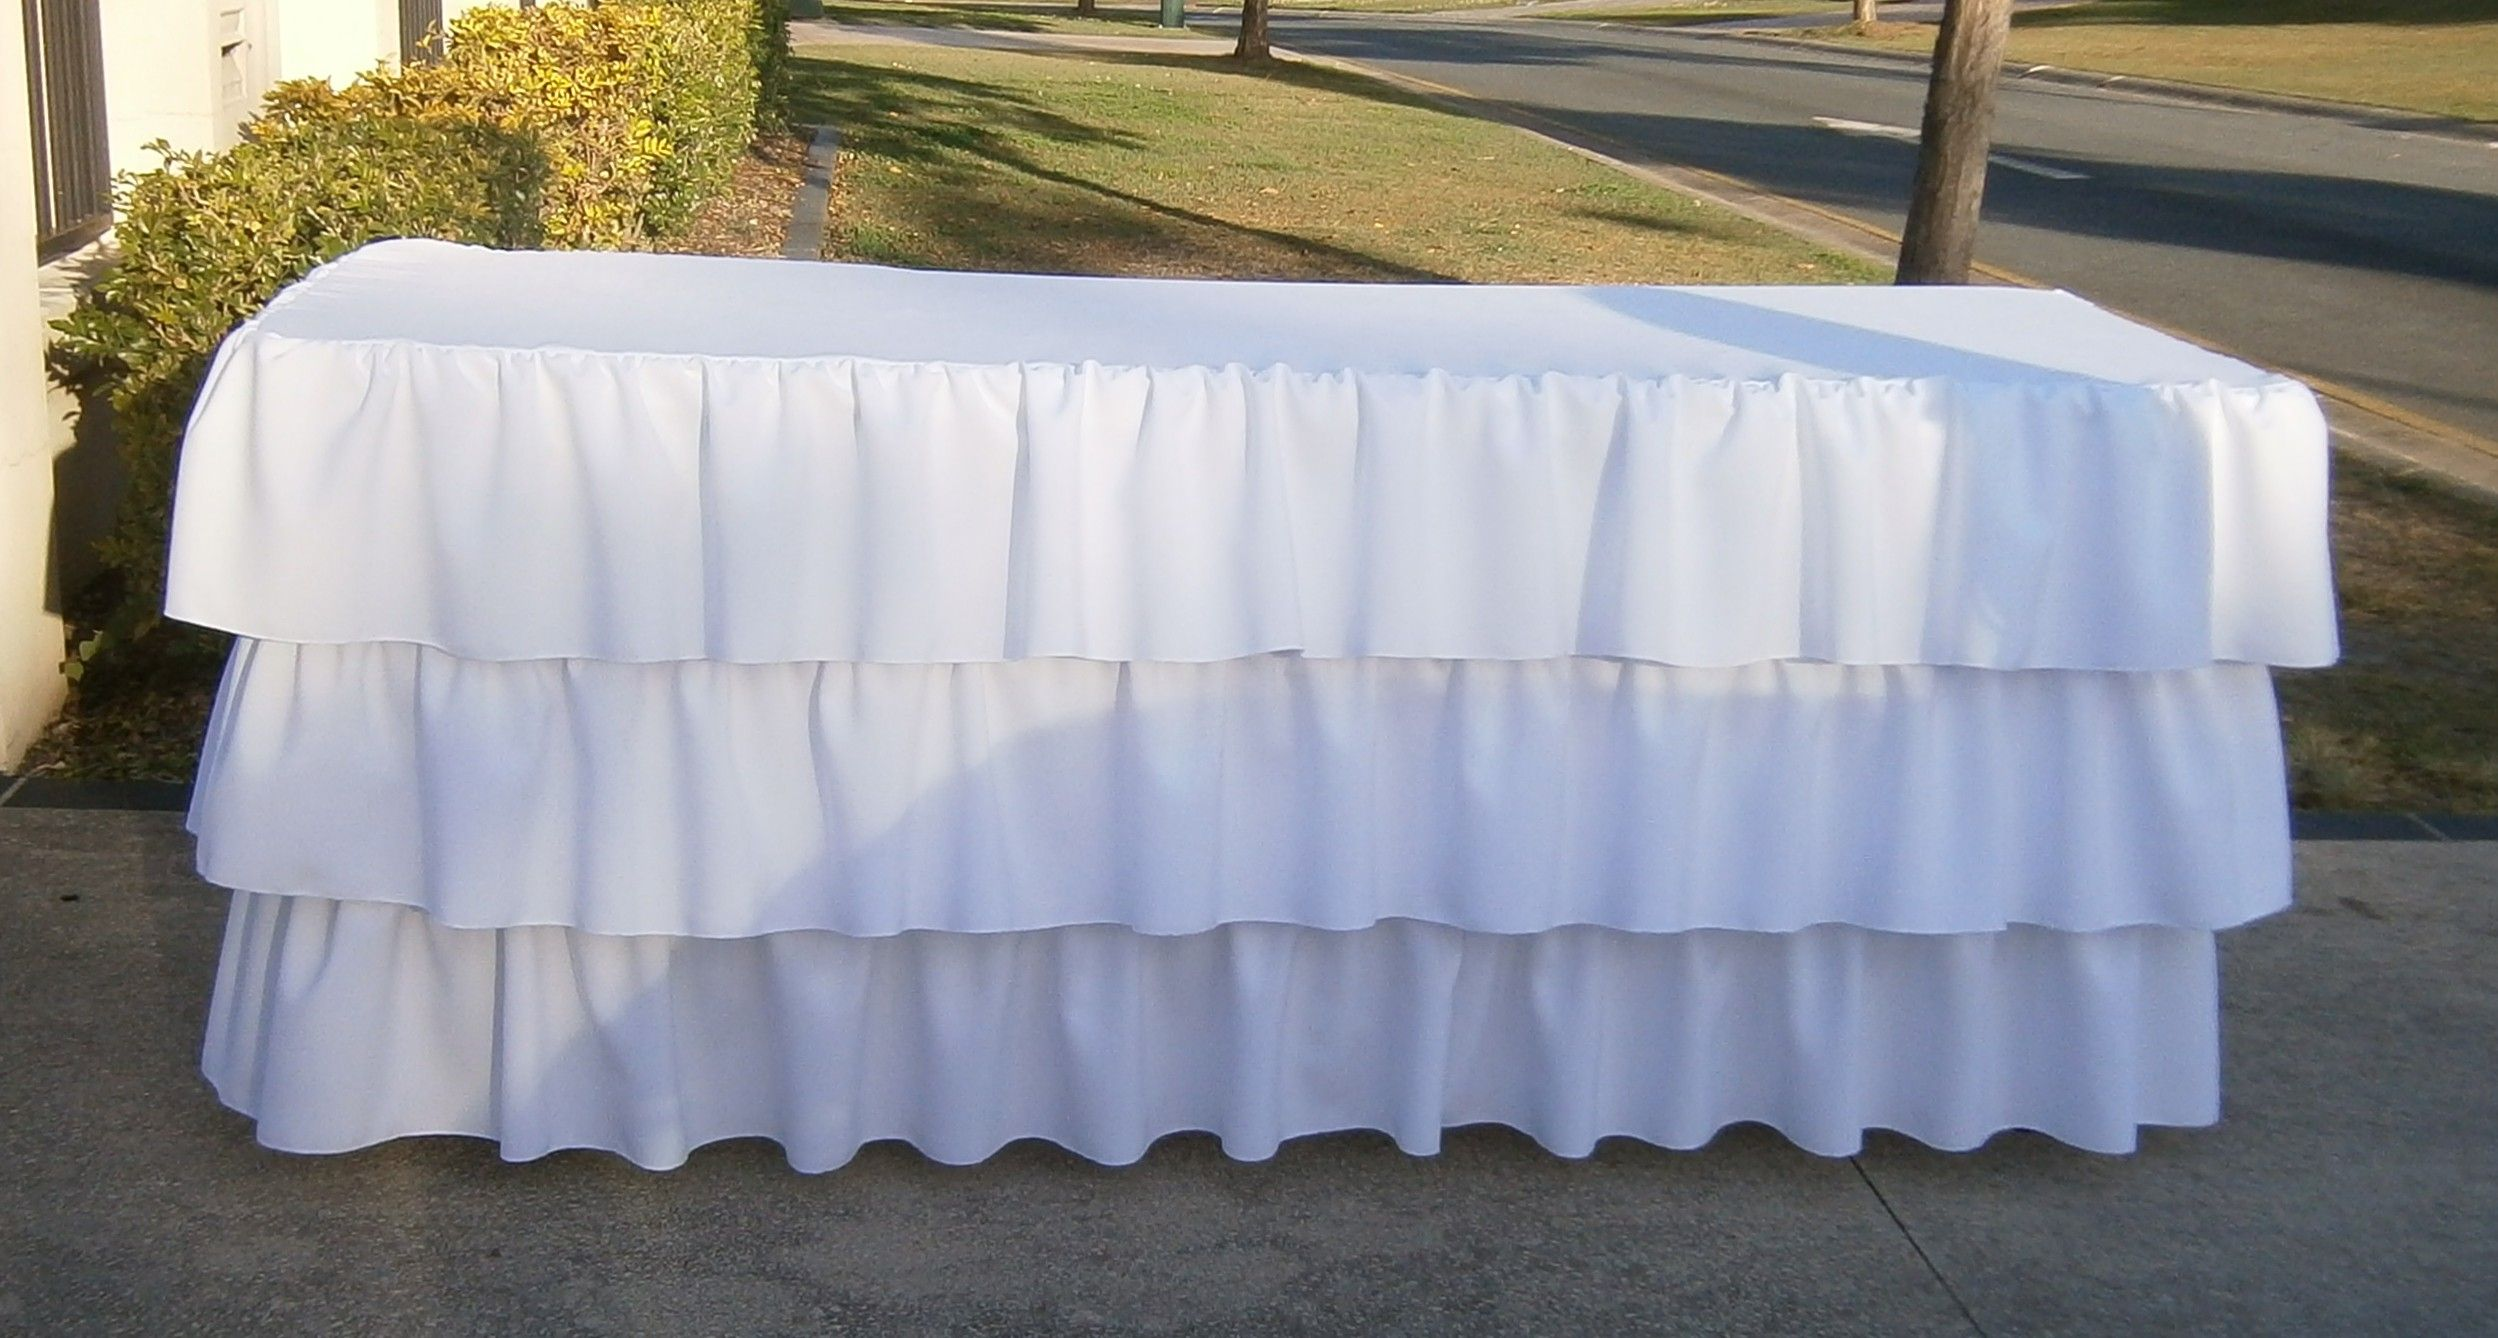 Exceptional 3 Tiered Ruffle Tablecloth   White From Www.sweetdesiresparties.com.au